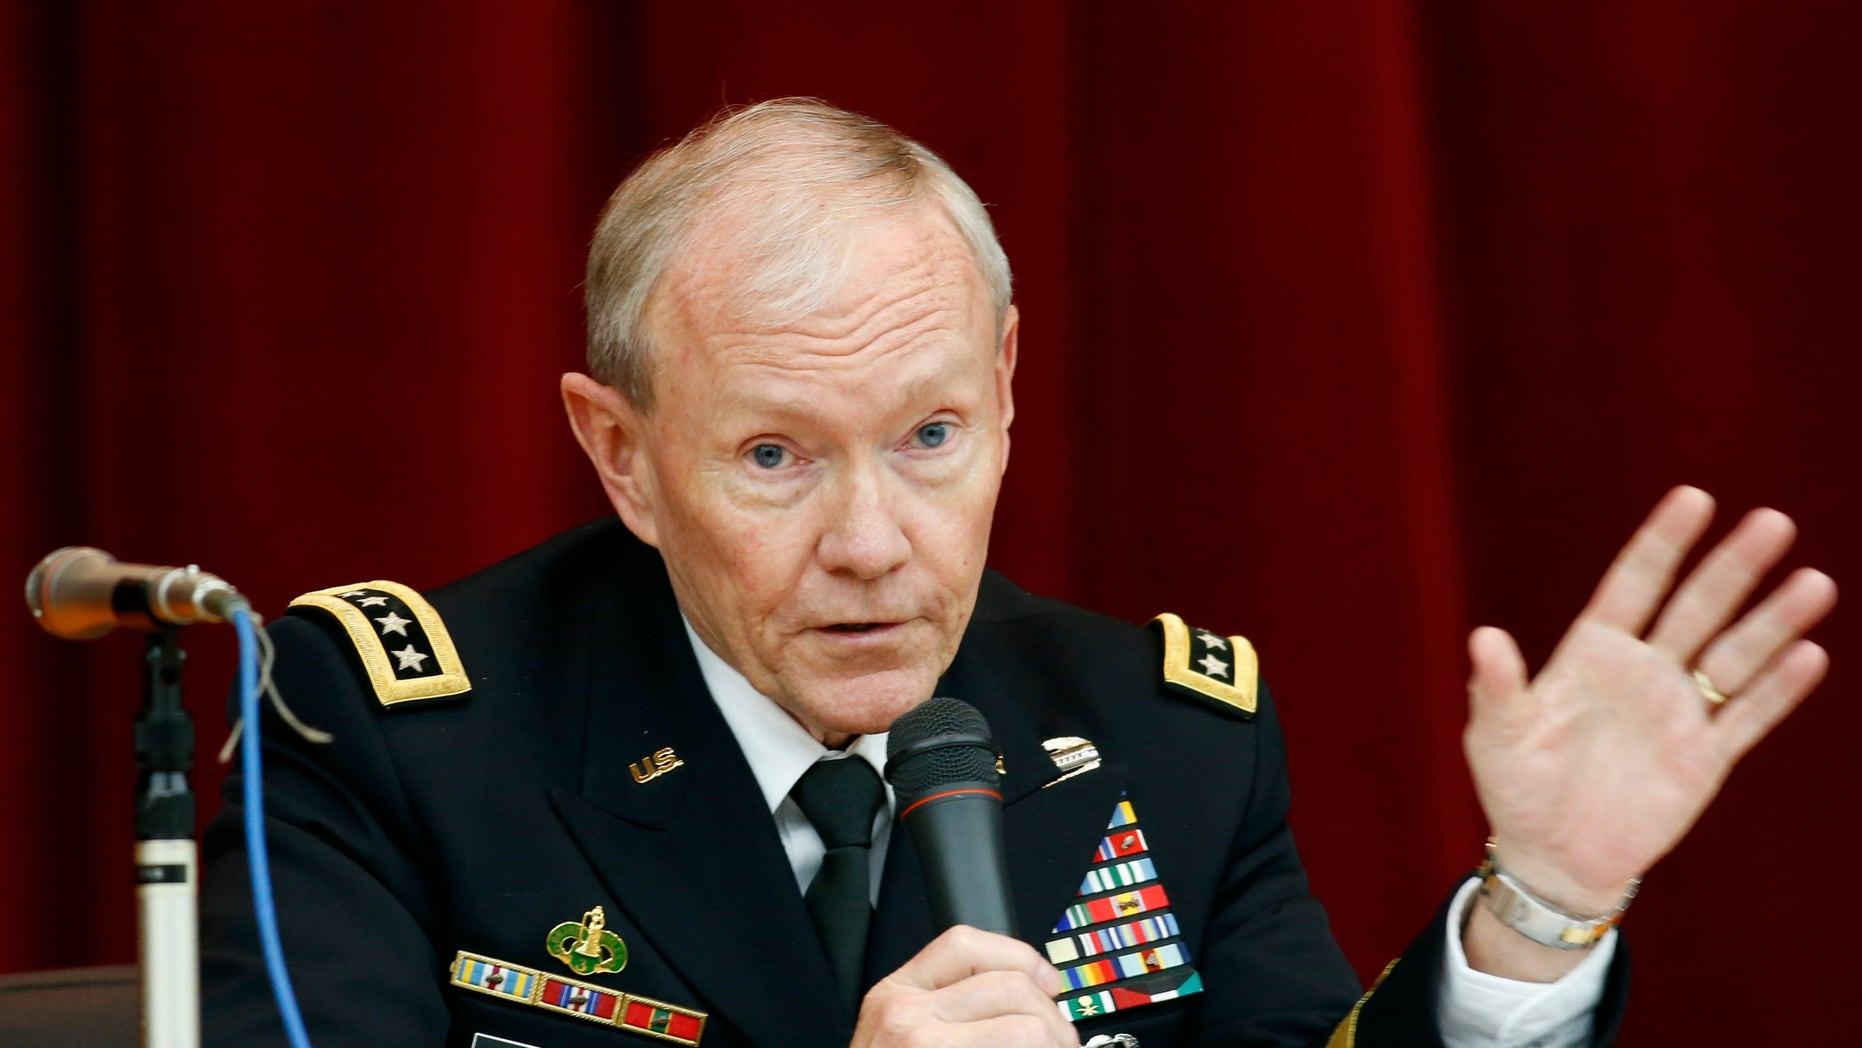 FILE - In this April 26, 2013, file photo, Chairman of the Joint Chiefs of Staff Gen. Martin Dempsey speaks during his lecture at Joint Staff College in Tokyo. One after another, the charges have tumbled out _ allegations of sexual assaults in the military that have triggered outrage, from local commanders to Capitol Hill and the Oval Office. But for the Pentagon there seem to be few clear solutions beyond improved training and possible adjustments in how the military prosecutes such crimes. Changing the culture of a male-dominated, change-resistant military that for years has tolerated sexism and sexist behavior is proving to be a challenging task. (AP Photo/Koji Sasahara, File)